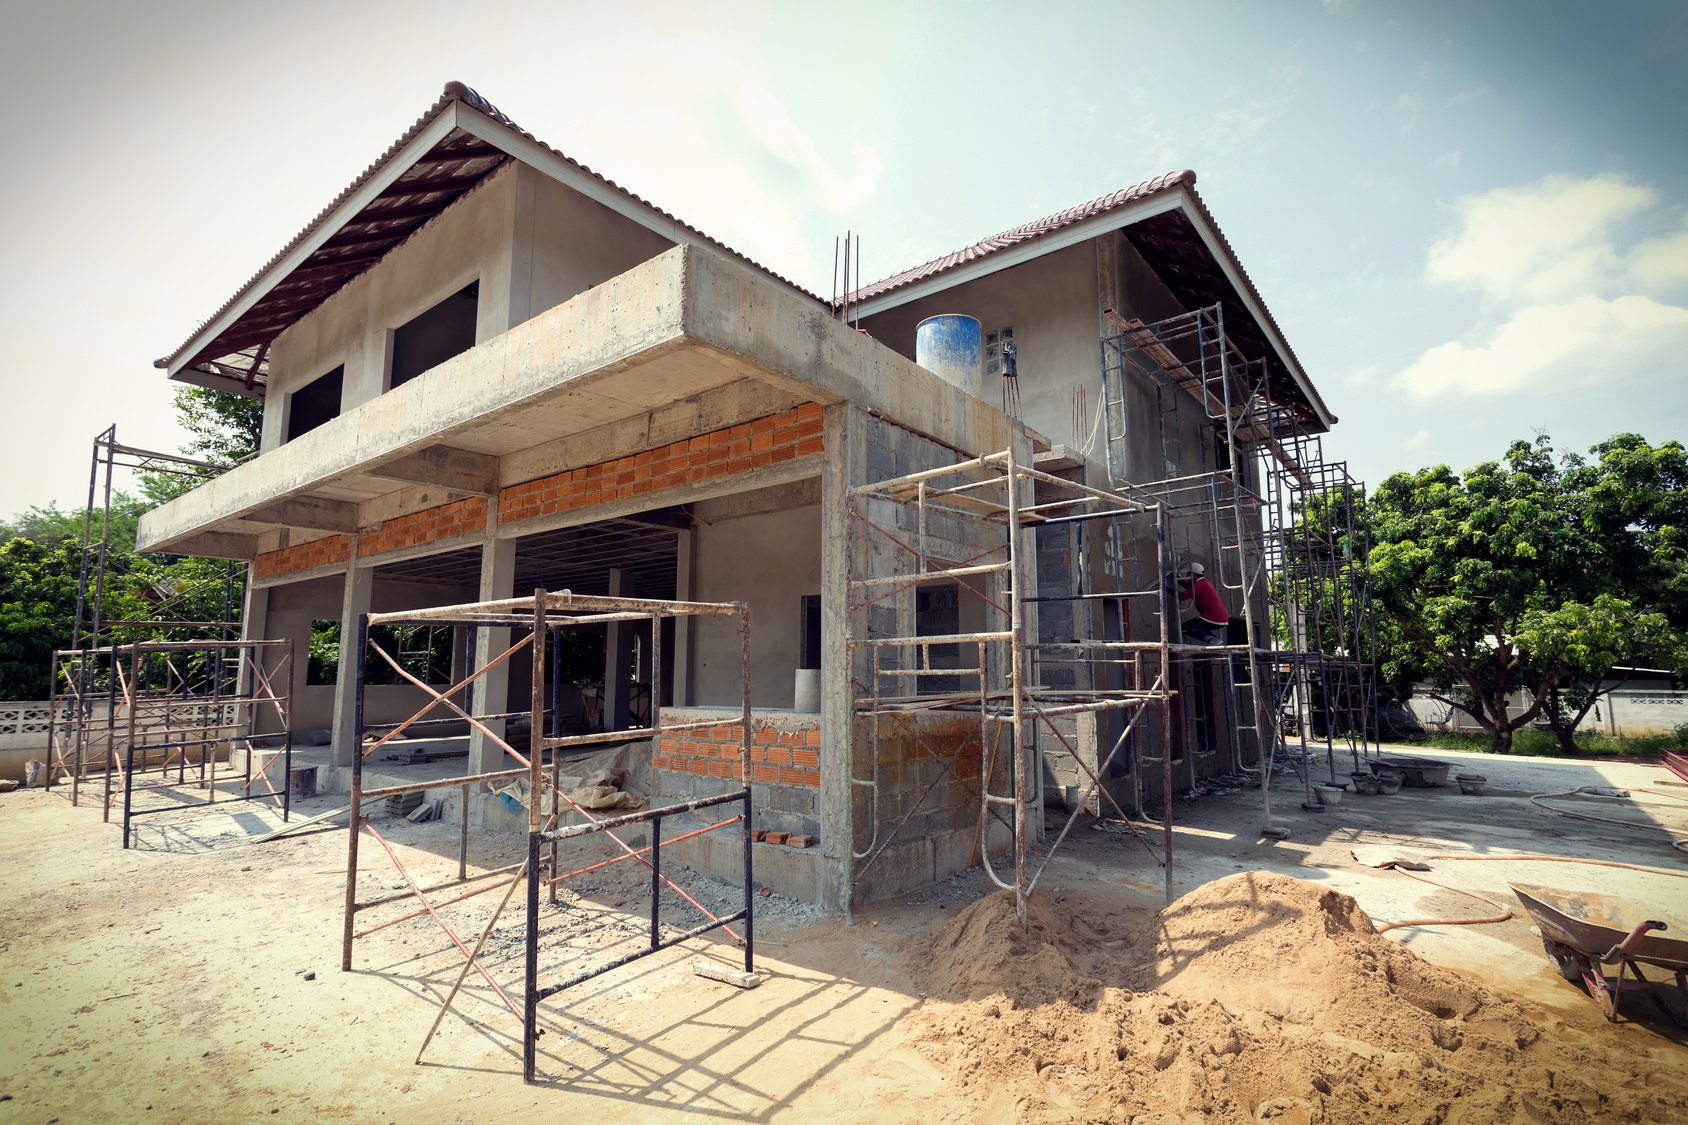 Buildings under construction are susceptible to a number of moisture-related problems, moisture meters help contractors limit risks.